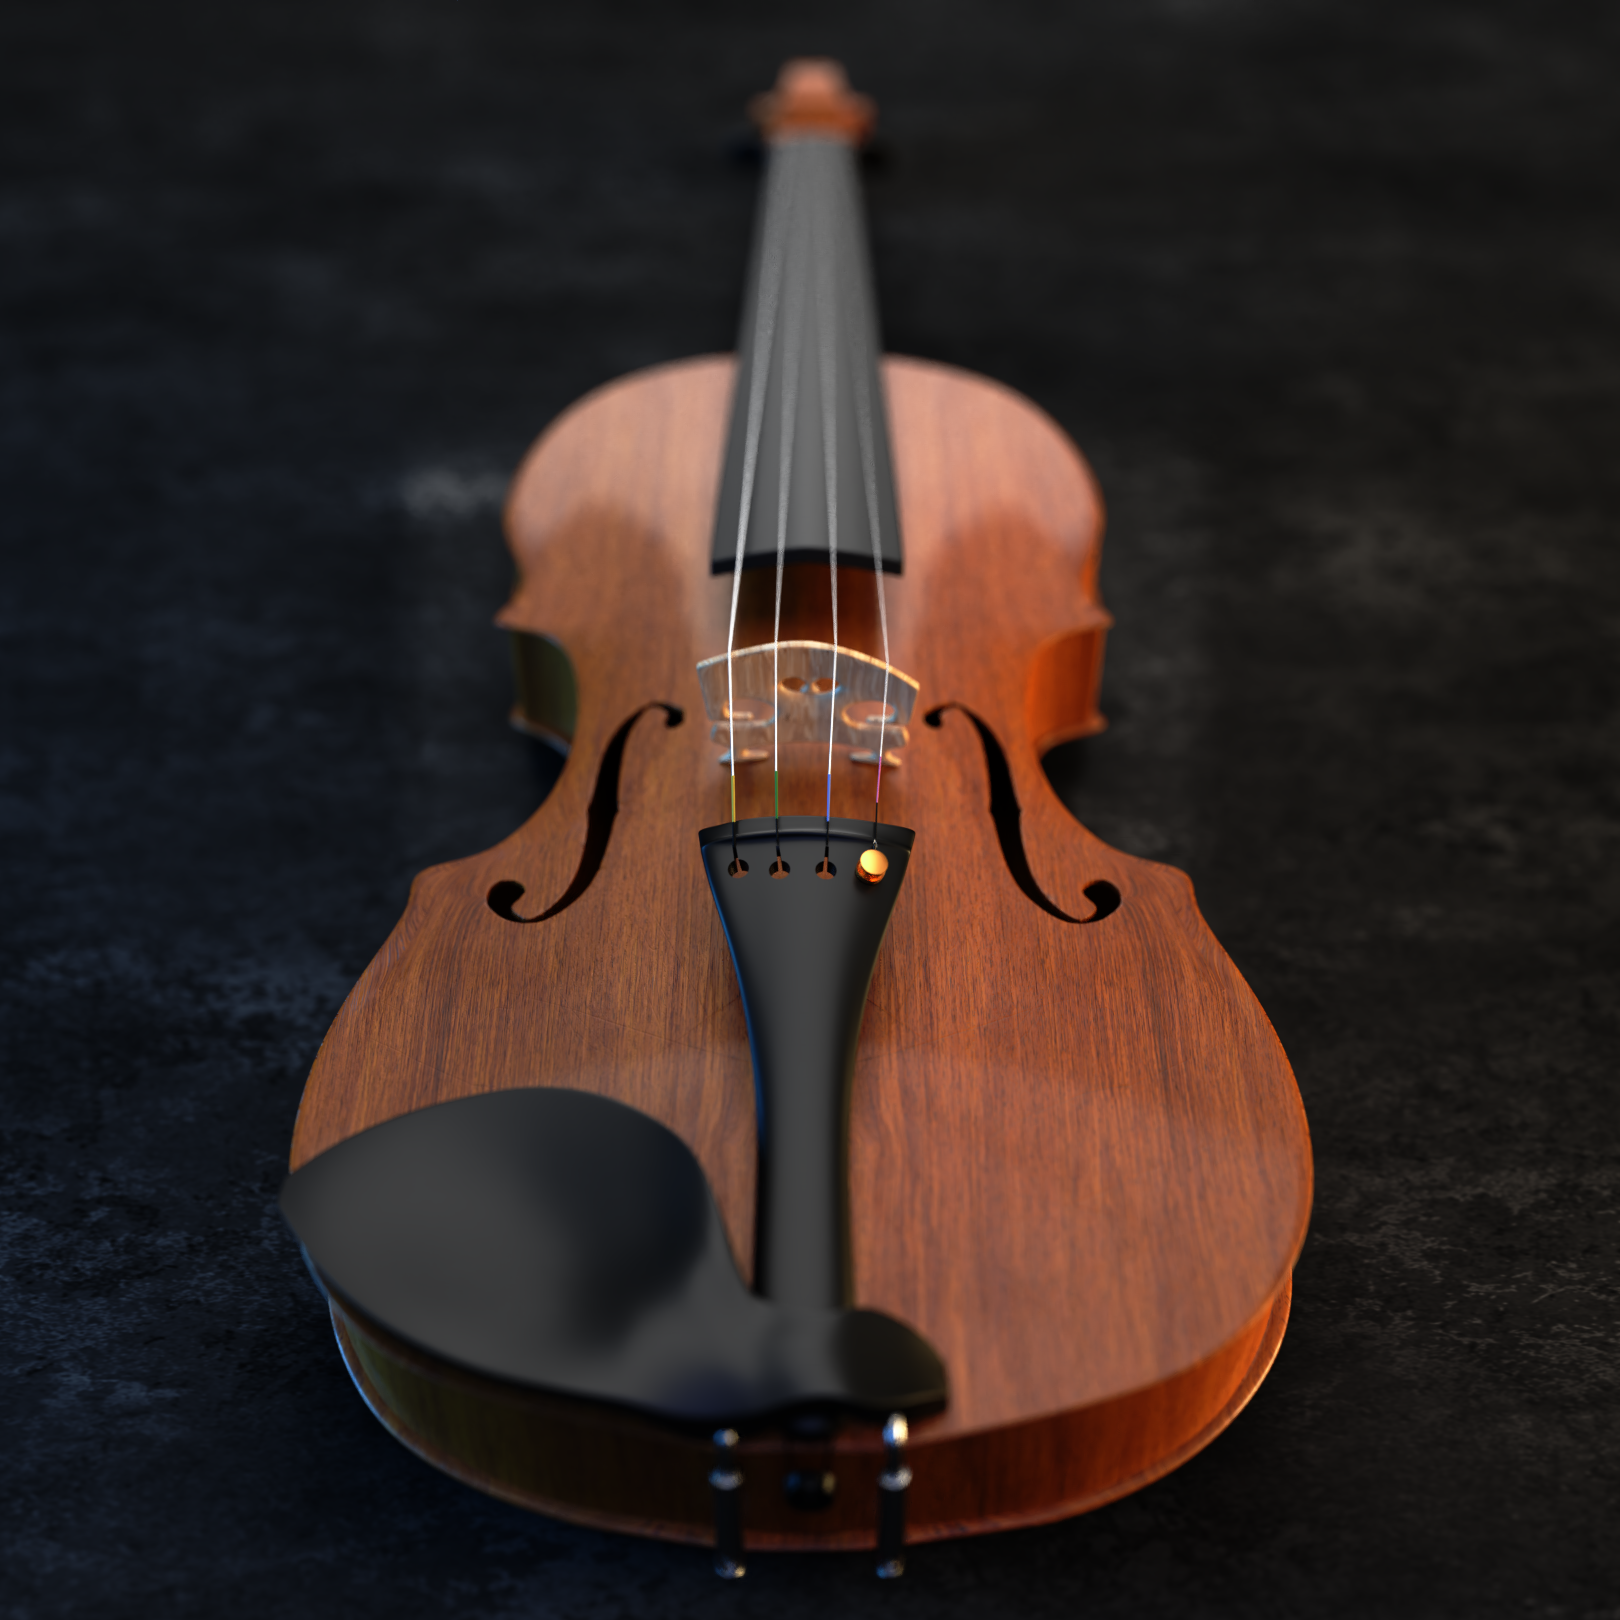 Realistic Violin  preview image 1